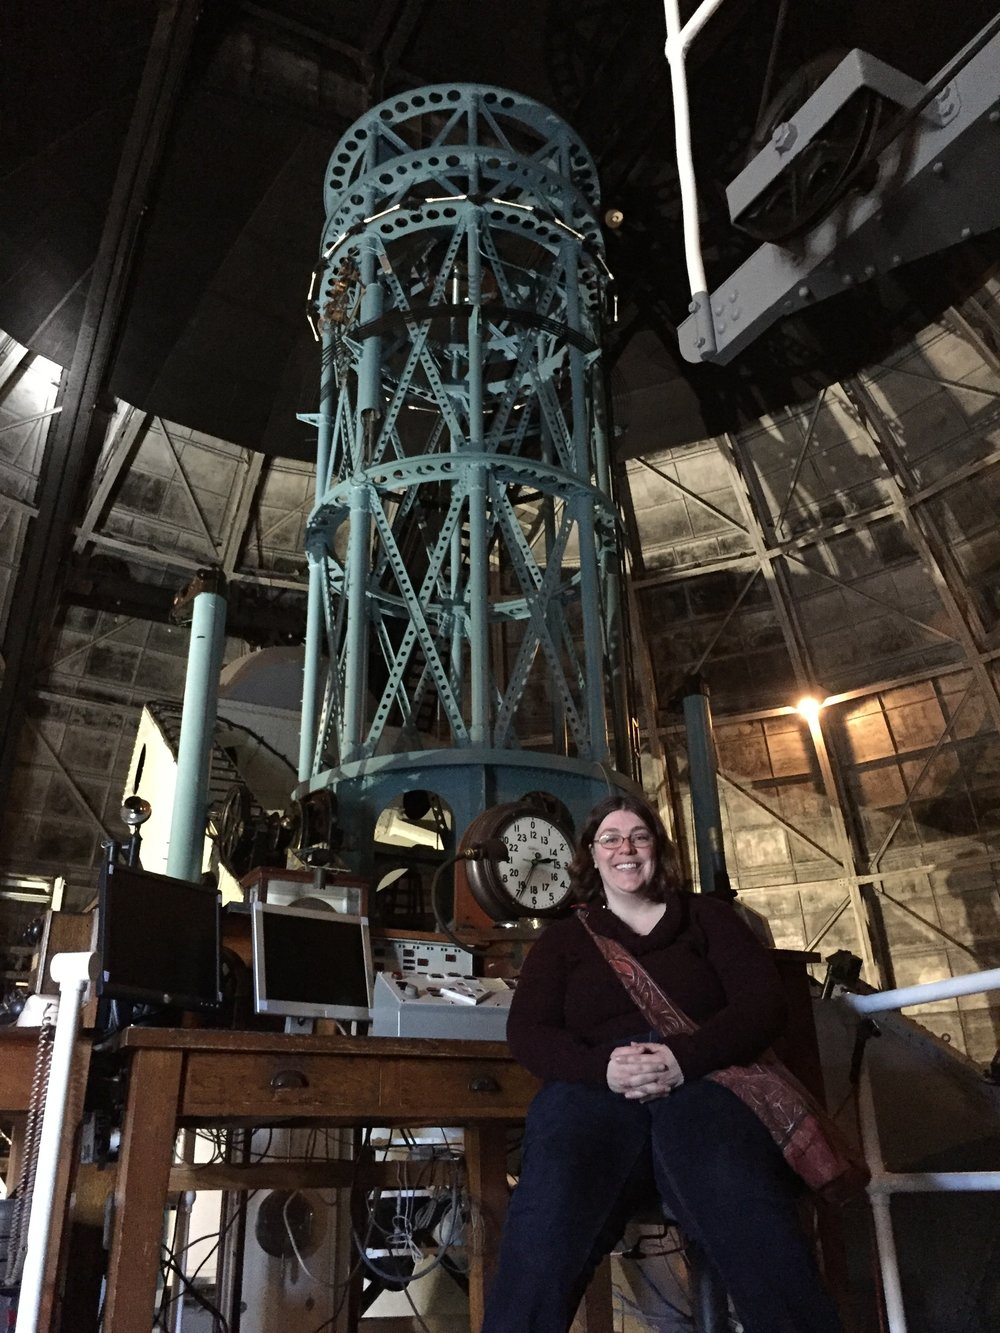 Dr. Rosalie McGurk  talks about her quest to find pairs of black holes. She explains how she used several different telescopes to solve this problem, narrowing the list of potential candidates from hundreds of thousands to about twenty.